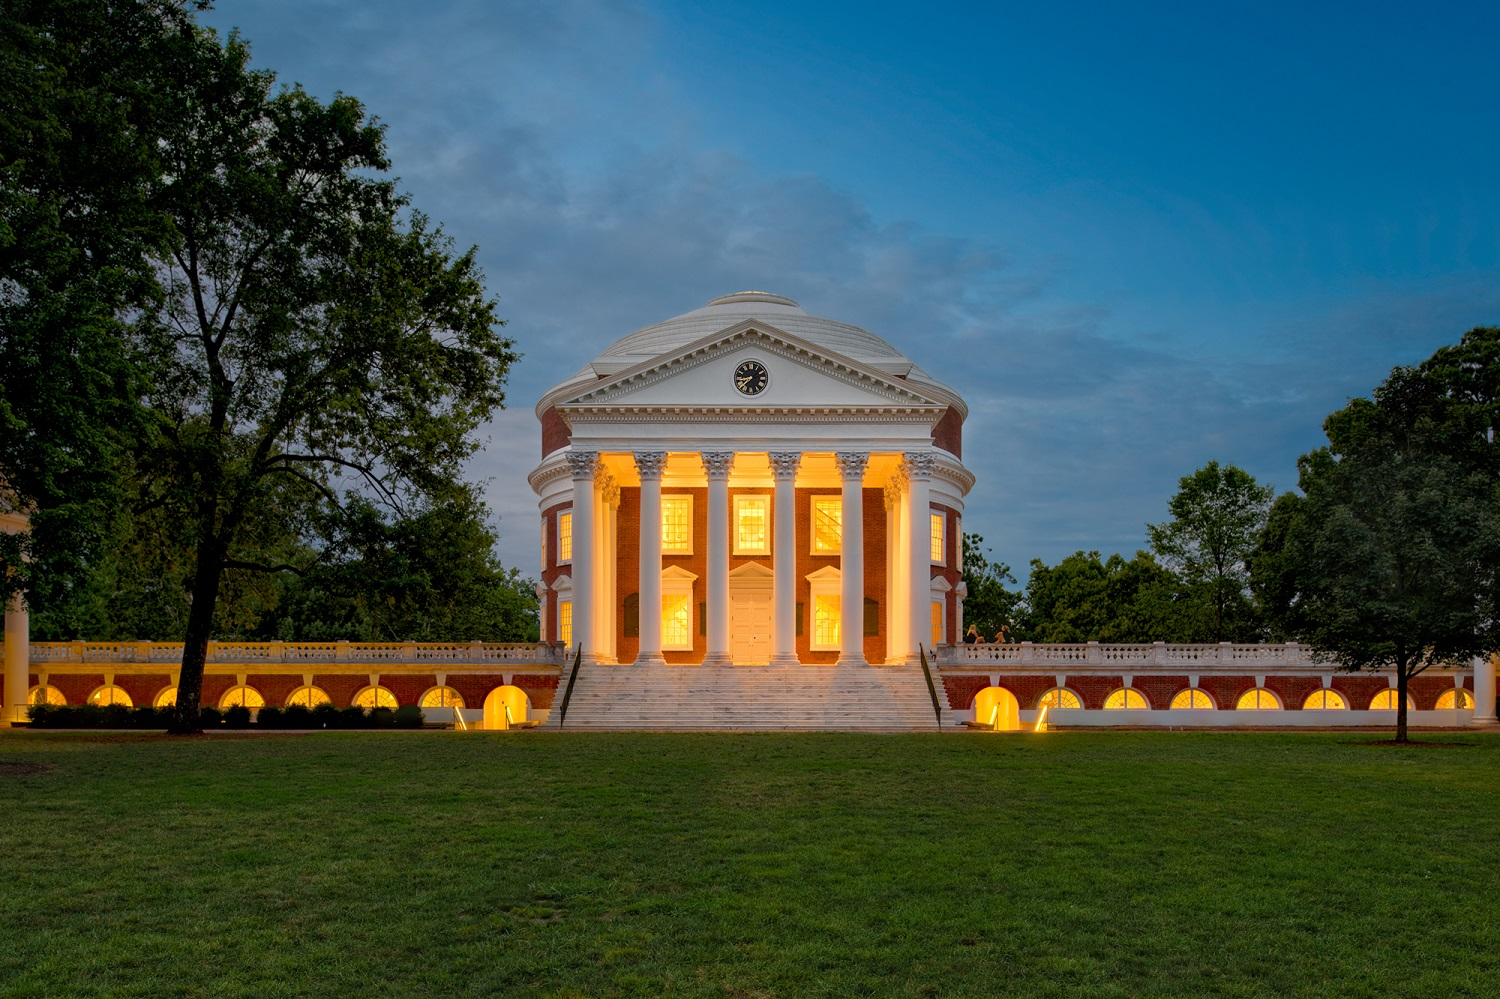 Thomas Jefferson's Rotunda at the University of Virginia, Charlottesville, VA. Restoration by John G. Waite Associates. Image: Anna Wesolowska Photography